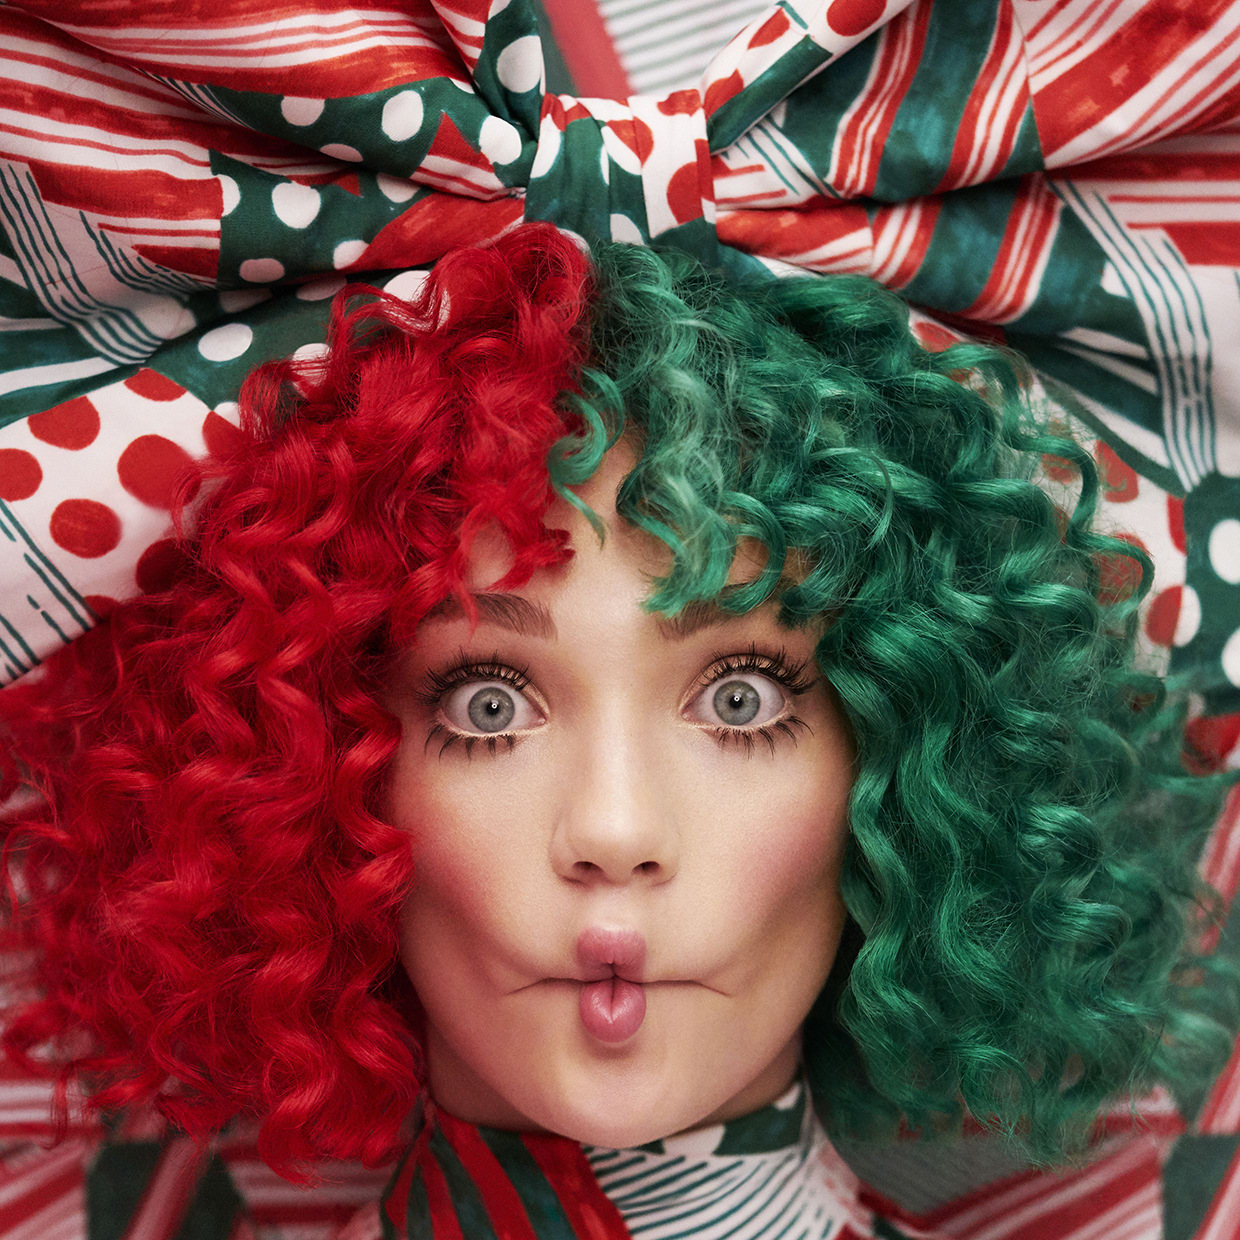 Thank God Sia is doing Christmas music her way